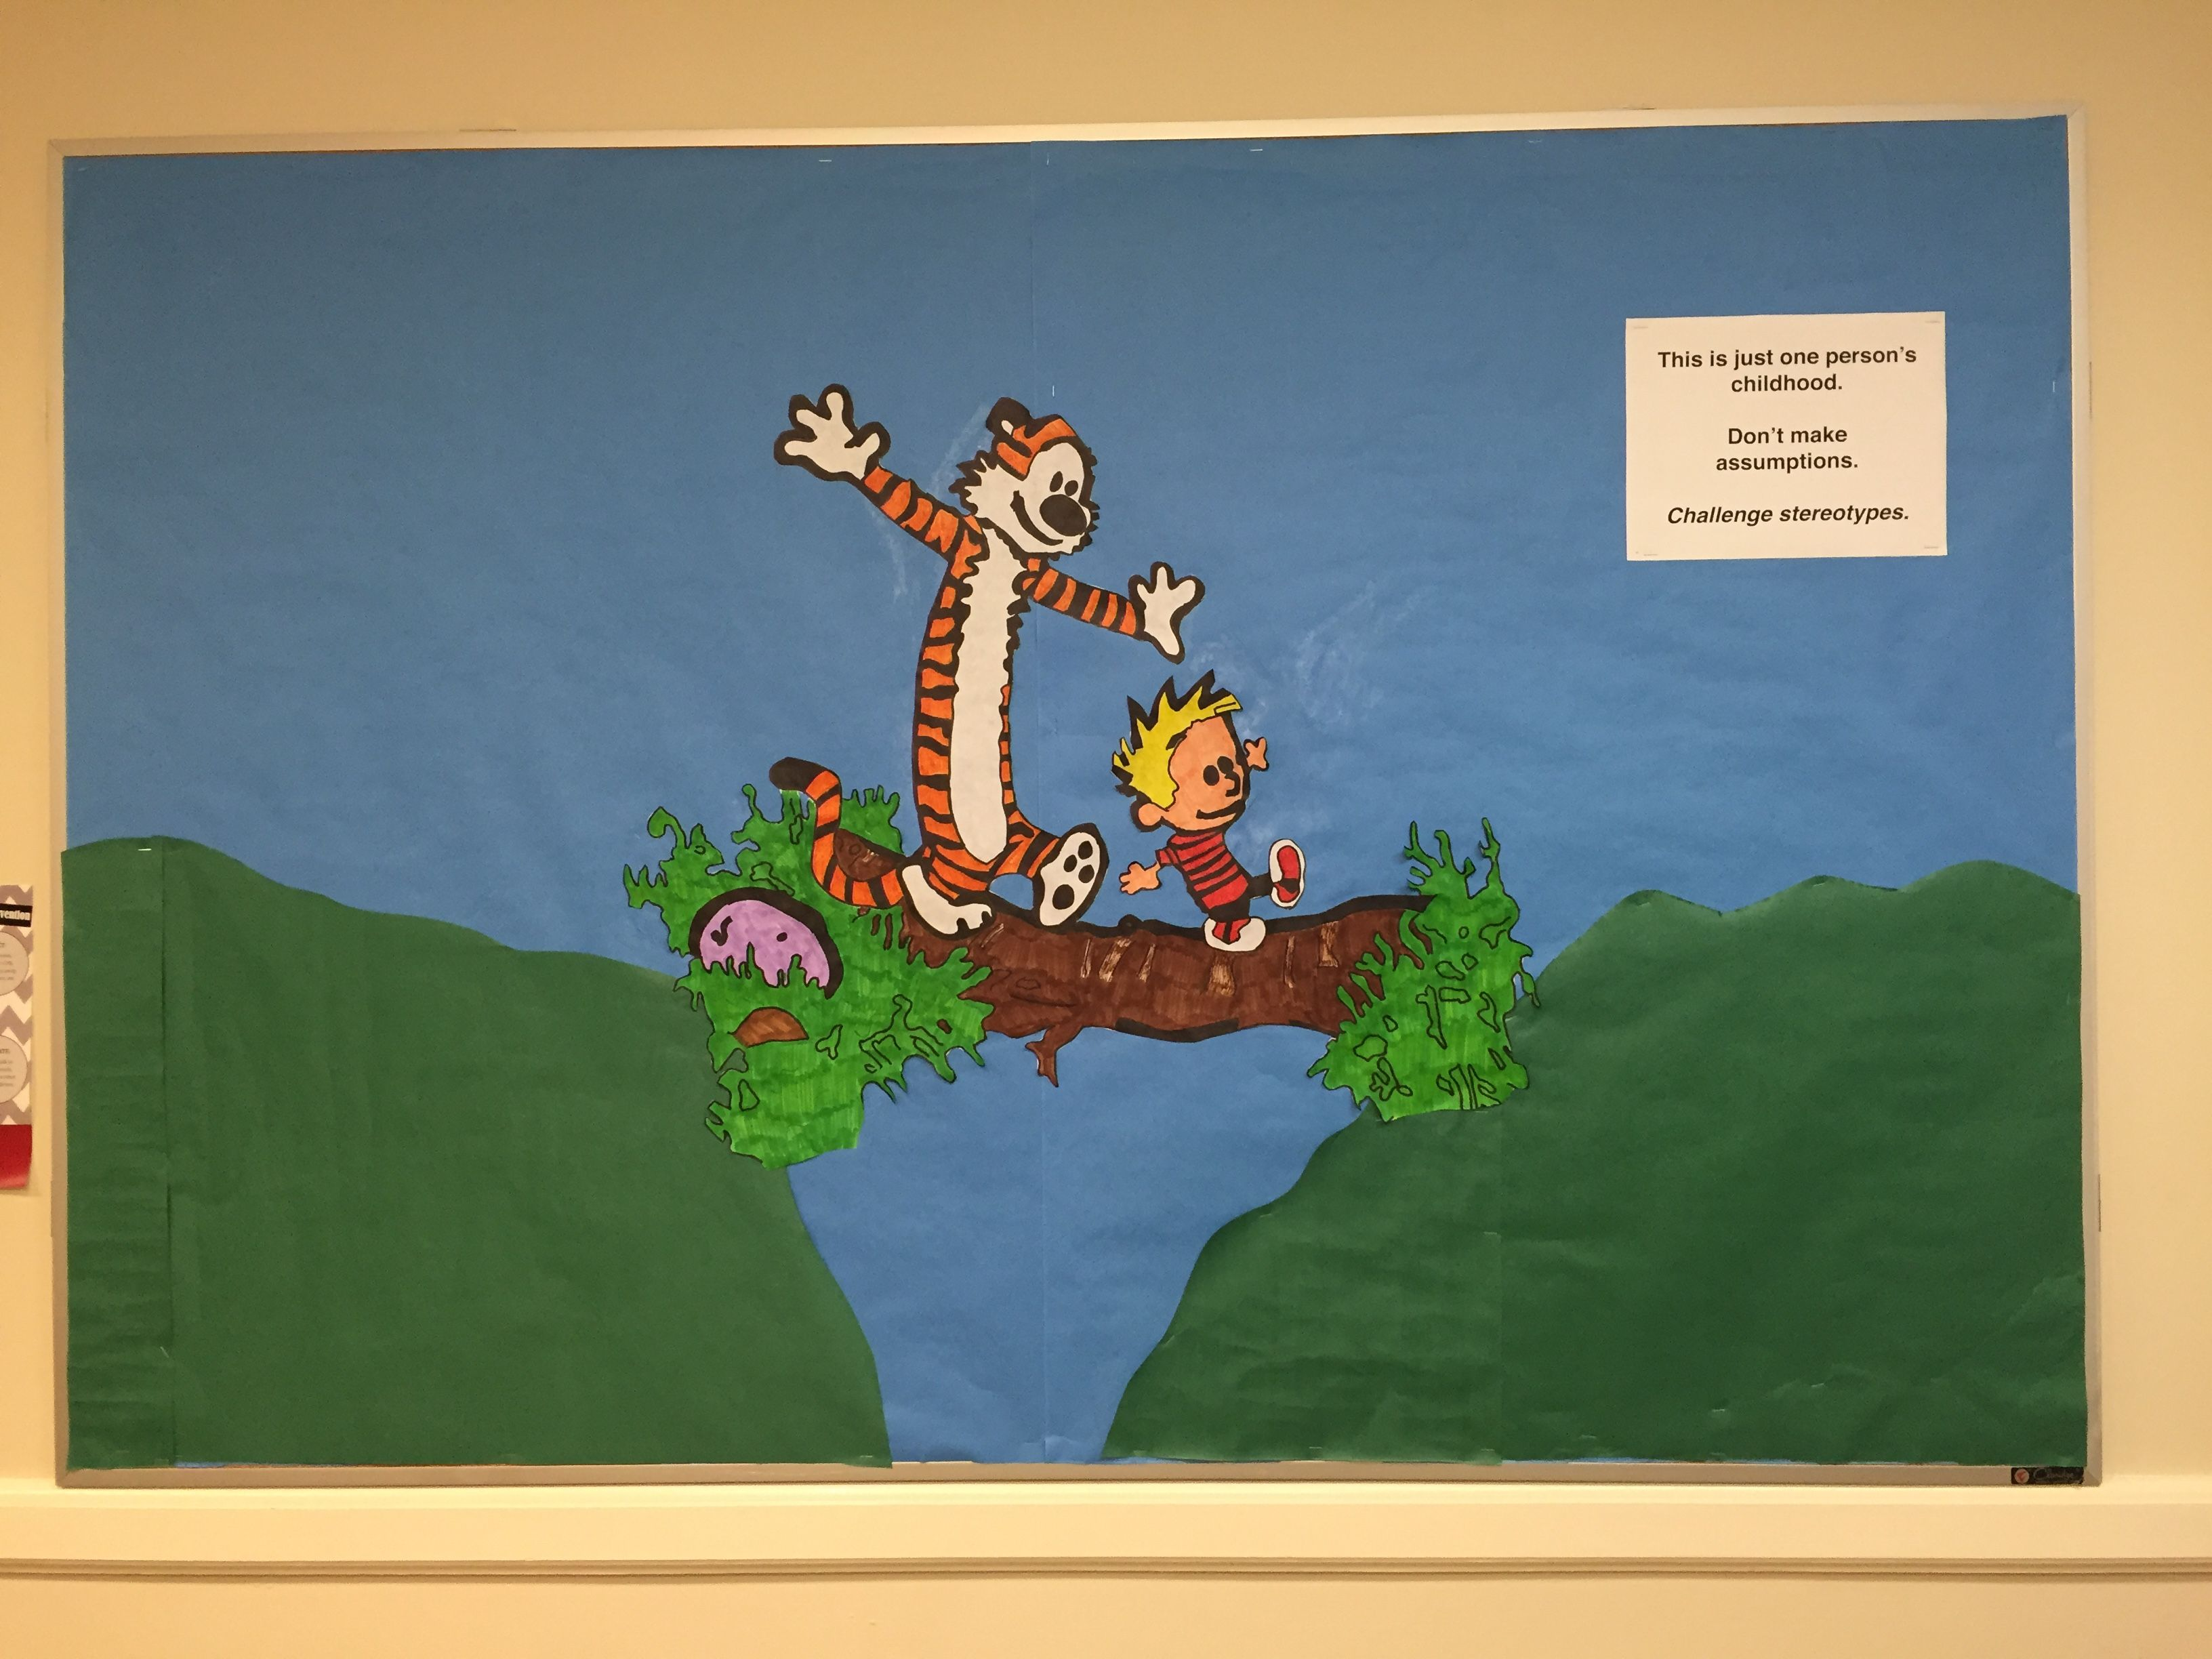 Calvin And Hobbes Themed Bulletin Board Cultural Diversity Theme The Paper Says This Is Just One Person S Chi Cultural Diversity Calvin And Hobbes Childhood